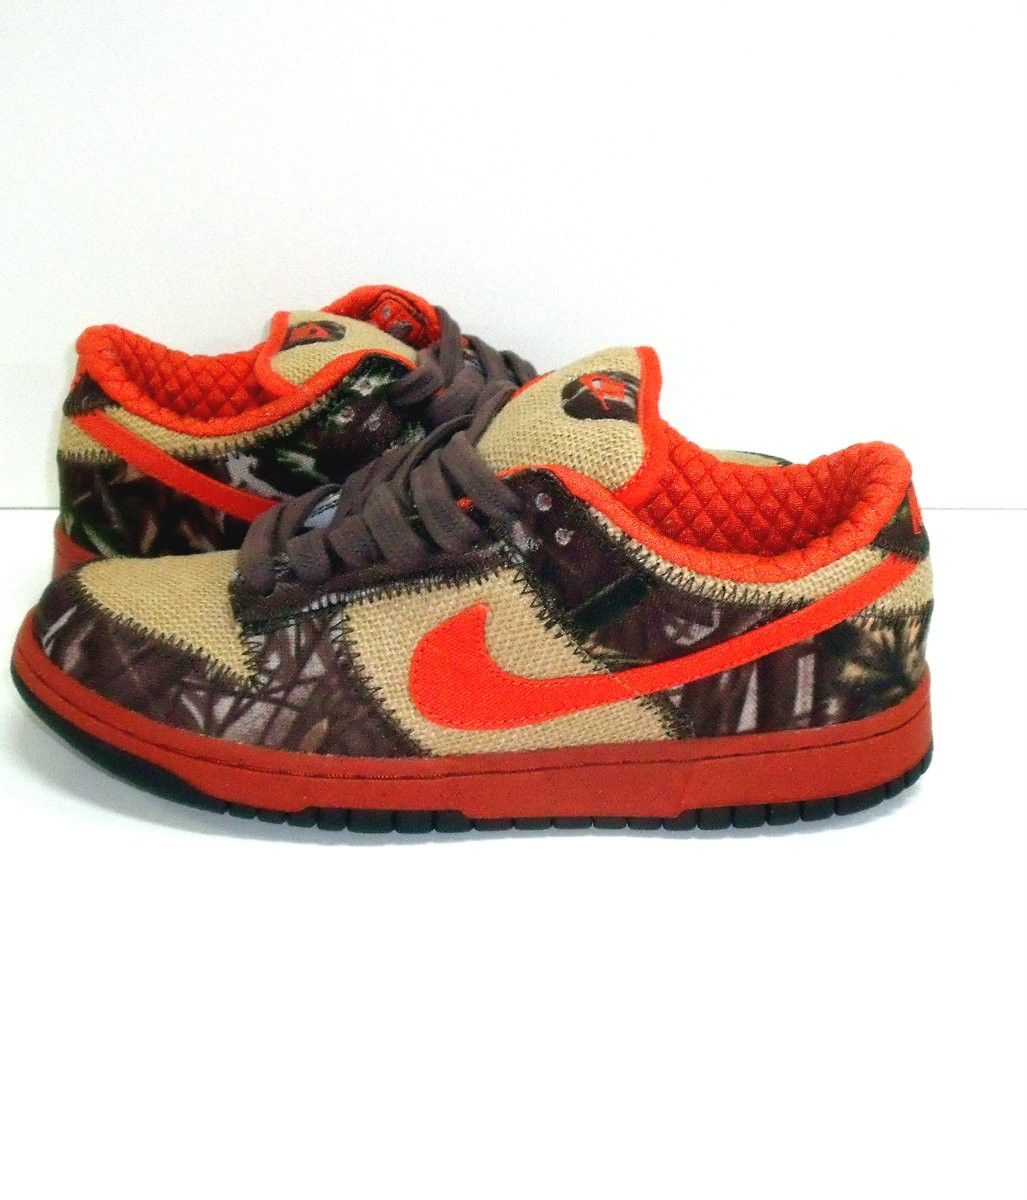 827e9db0 ... wholesale nike dunk low sb hunters 04 size 9 worn 7 out of 10 228a5  f4032